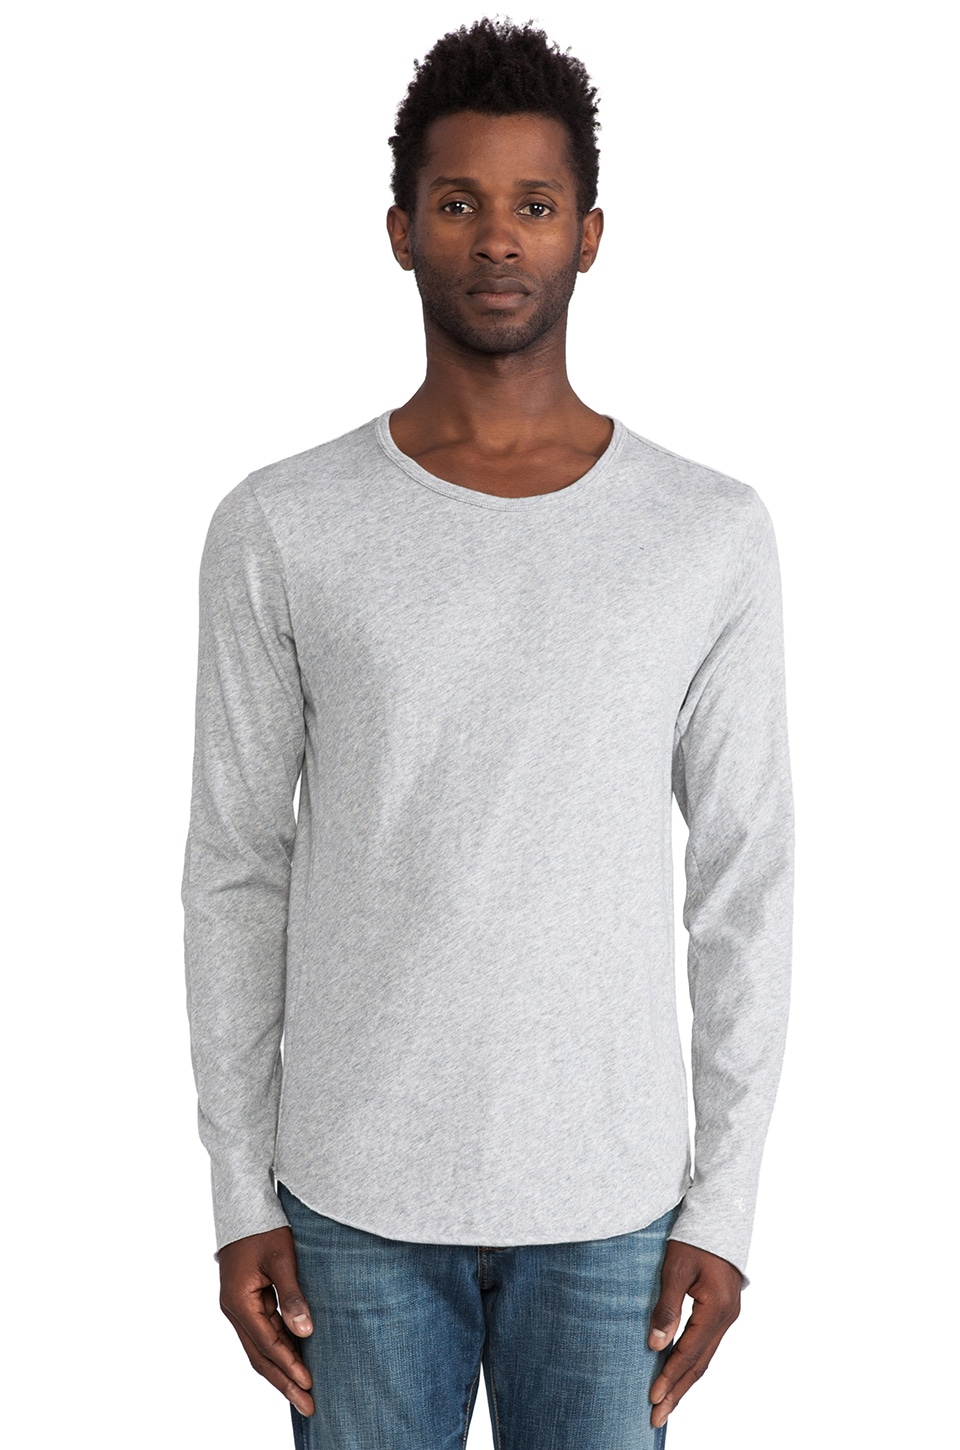 Rag & Bone Raw Edge LS Tee in Heather Grey